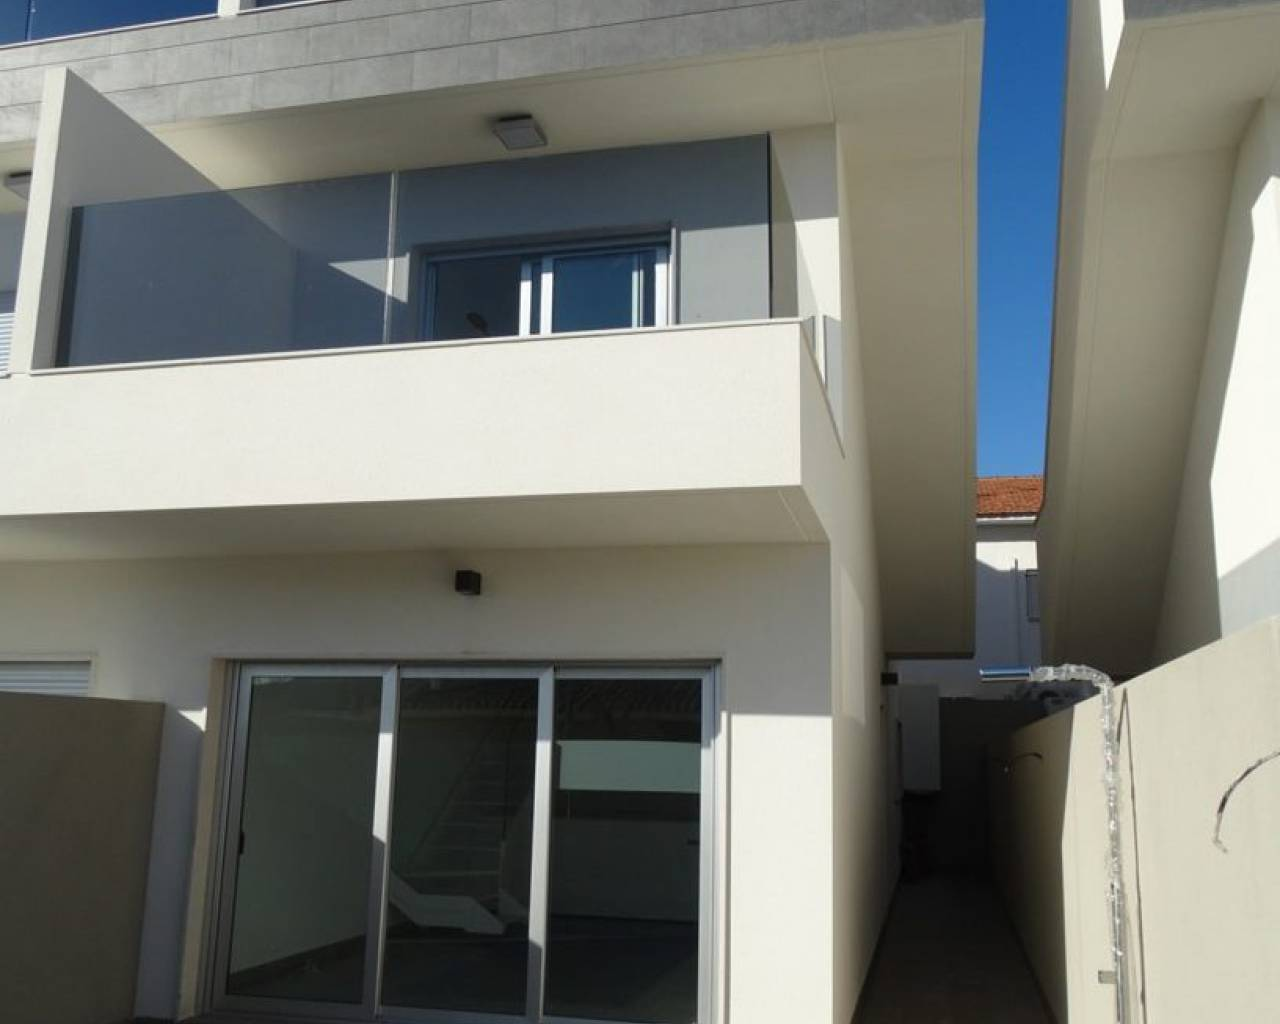 Resale - Detached Villa - Murcia Services Is Your One Stop For All Real Estate Needs In Murcia!